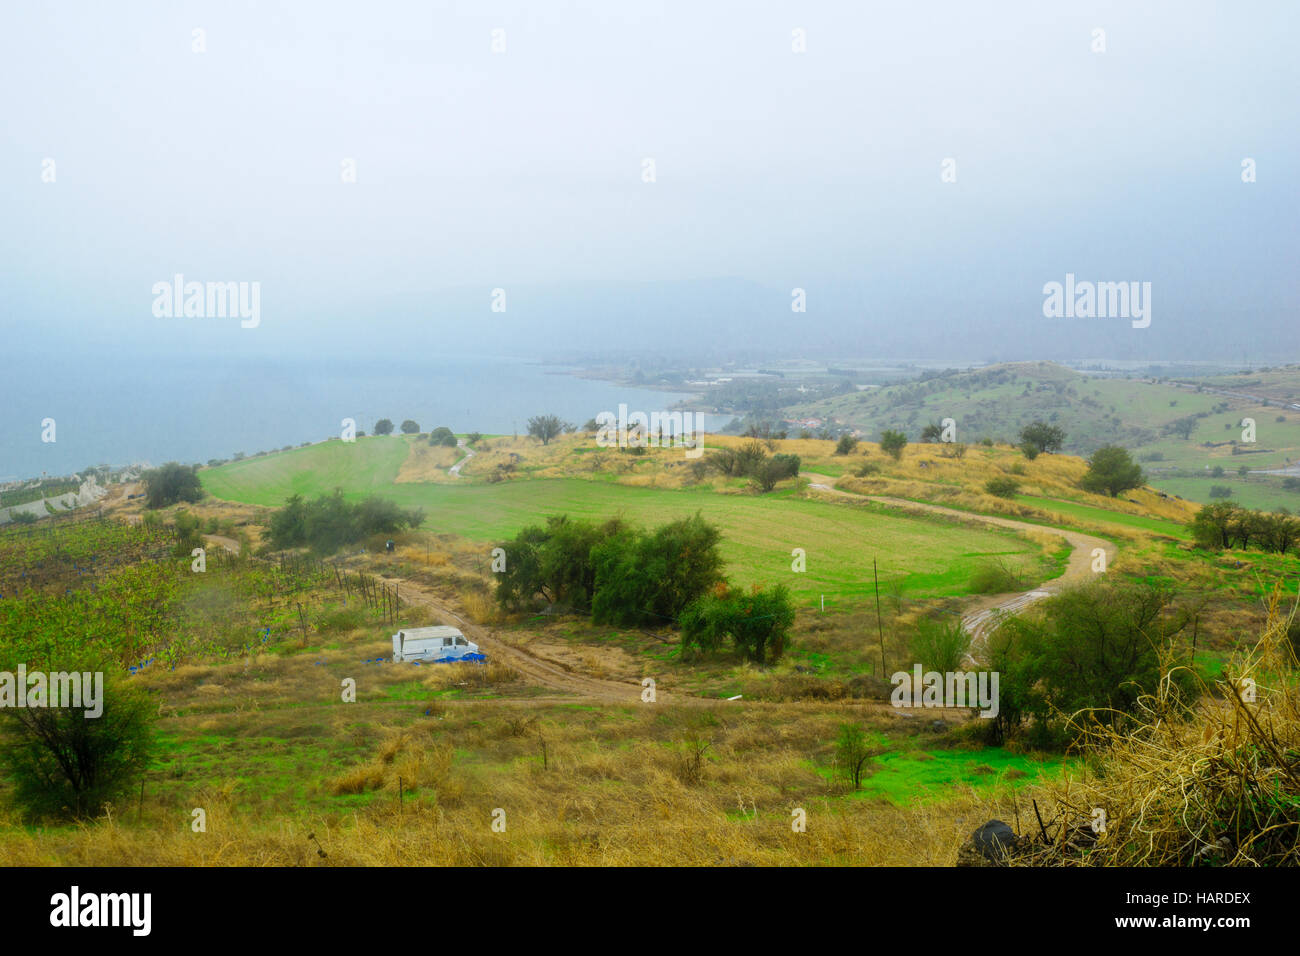 View of the Sea of Galilee from the Mount of Beatitudes, Northern Israel Stock Photo